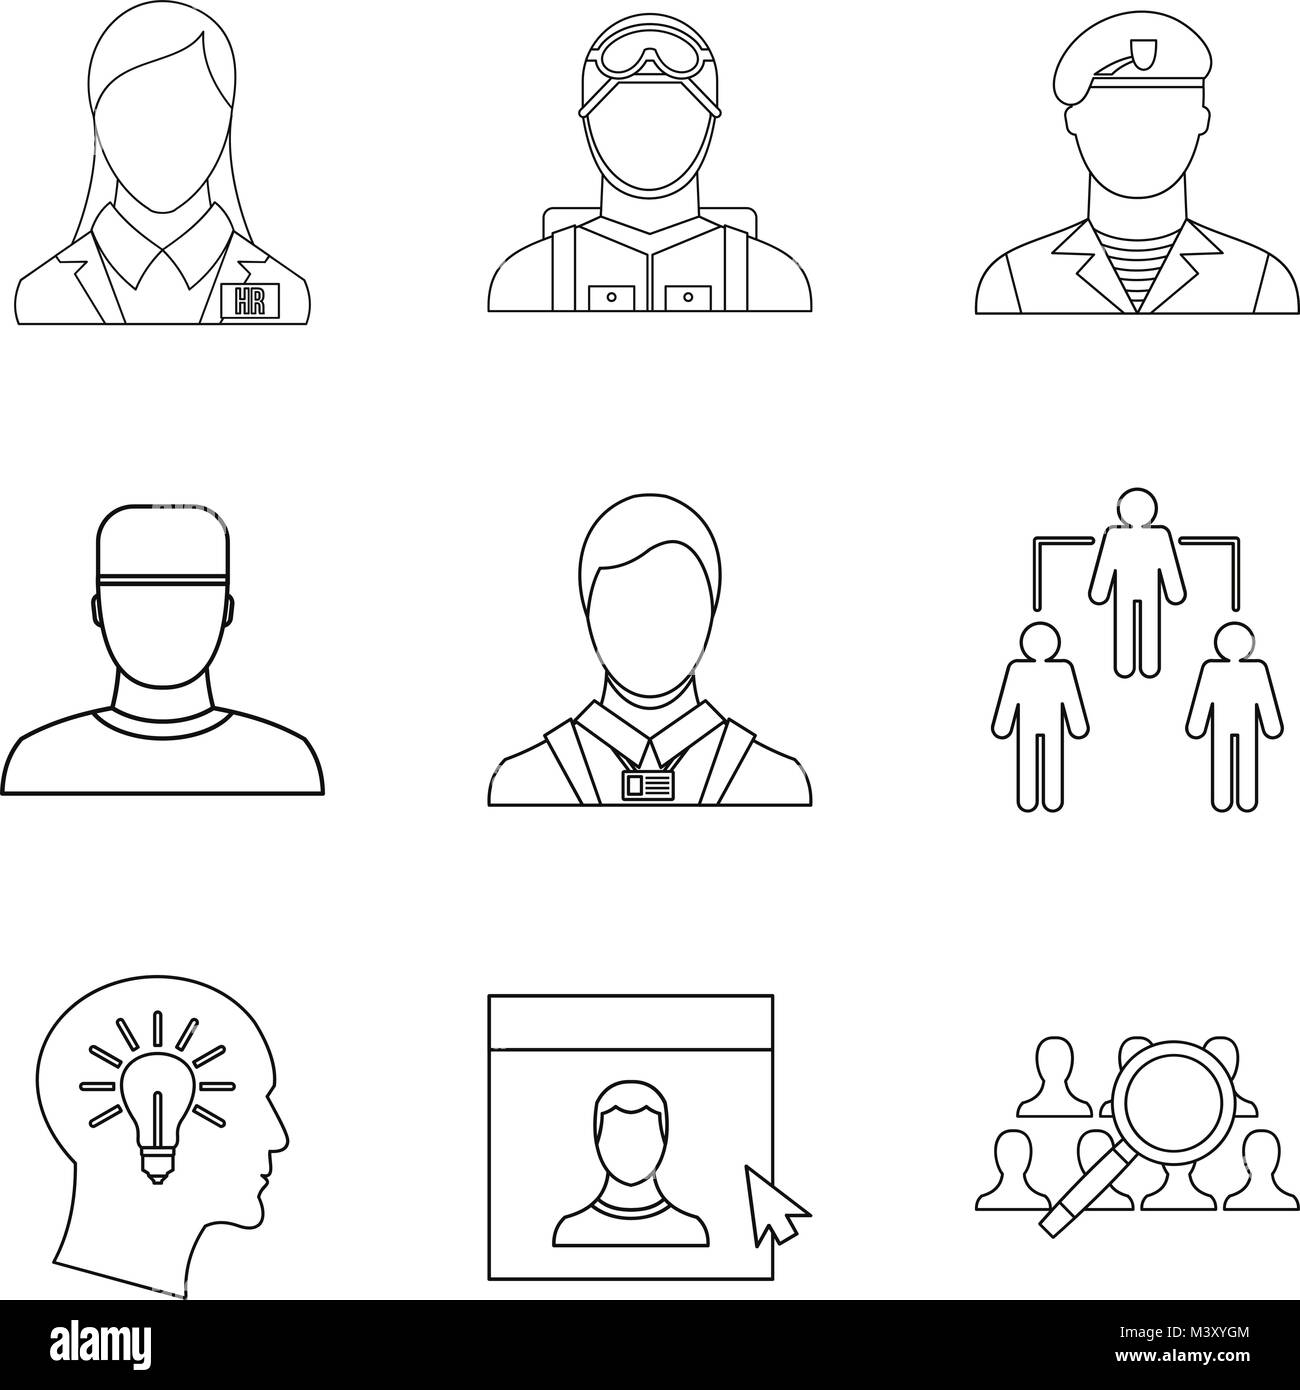 Personage icons set, outline style - Stock Image